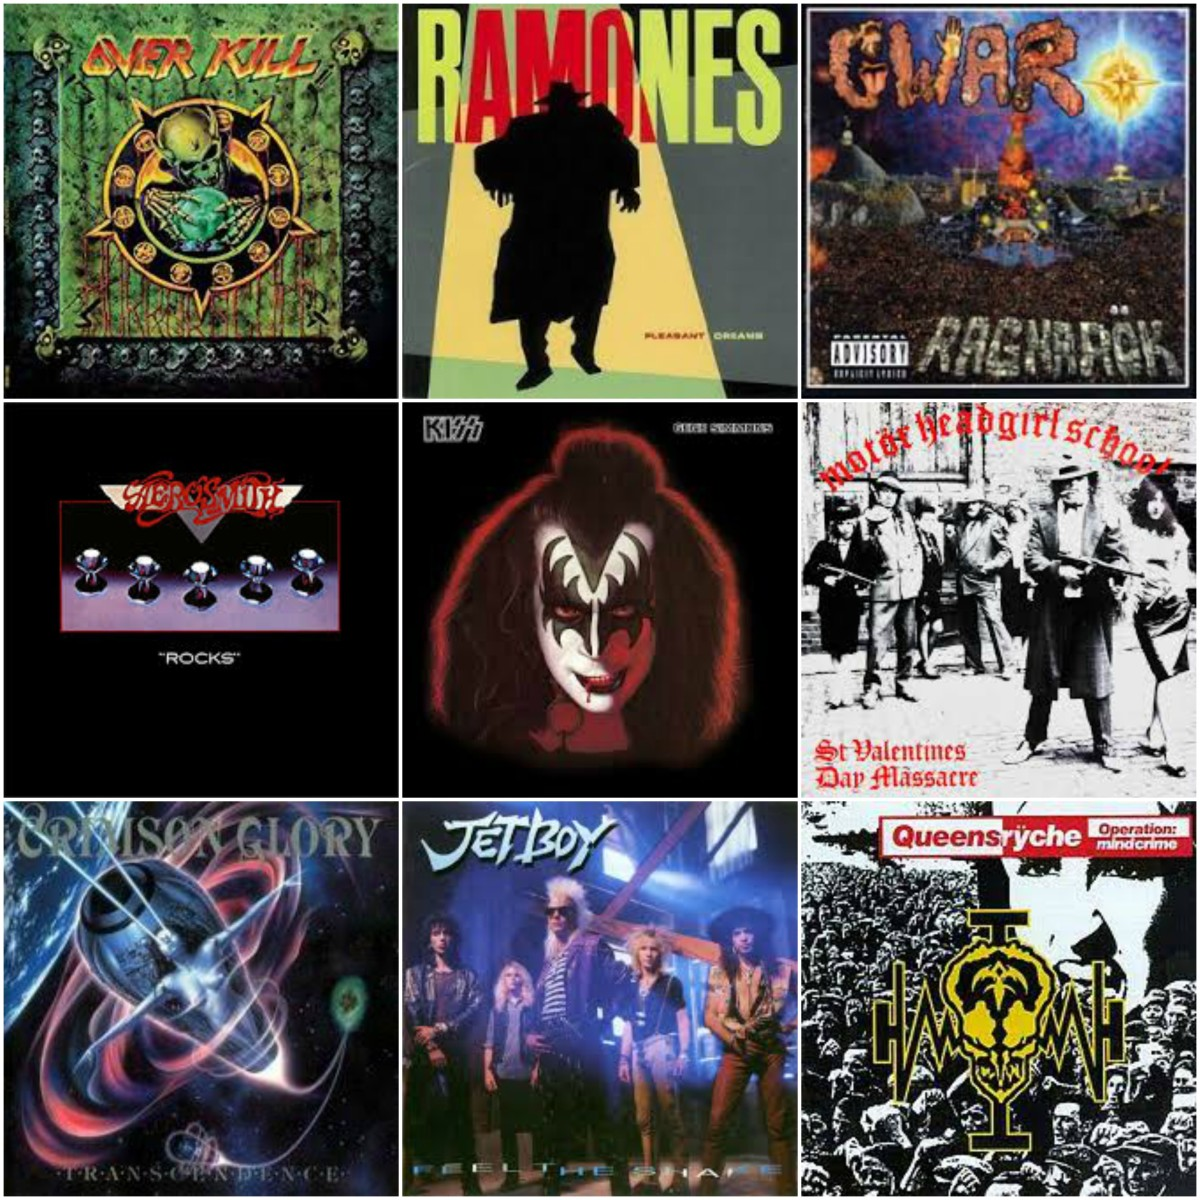 Album covers and single artwork for some iconic hard rock songs about viruses and disease.